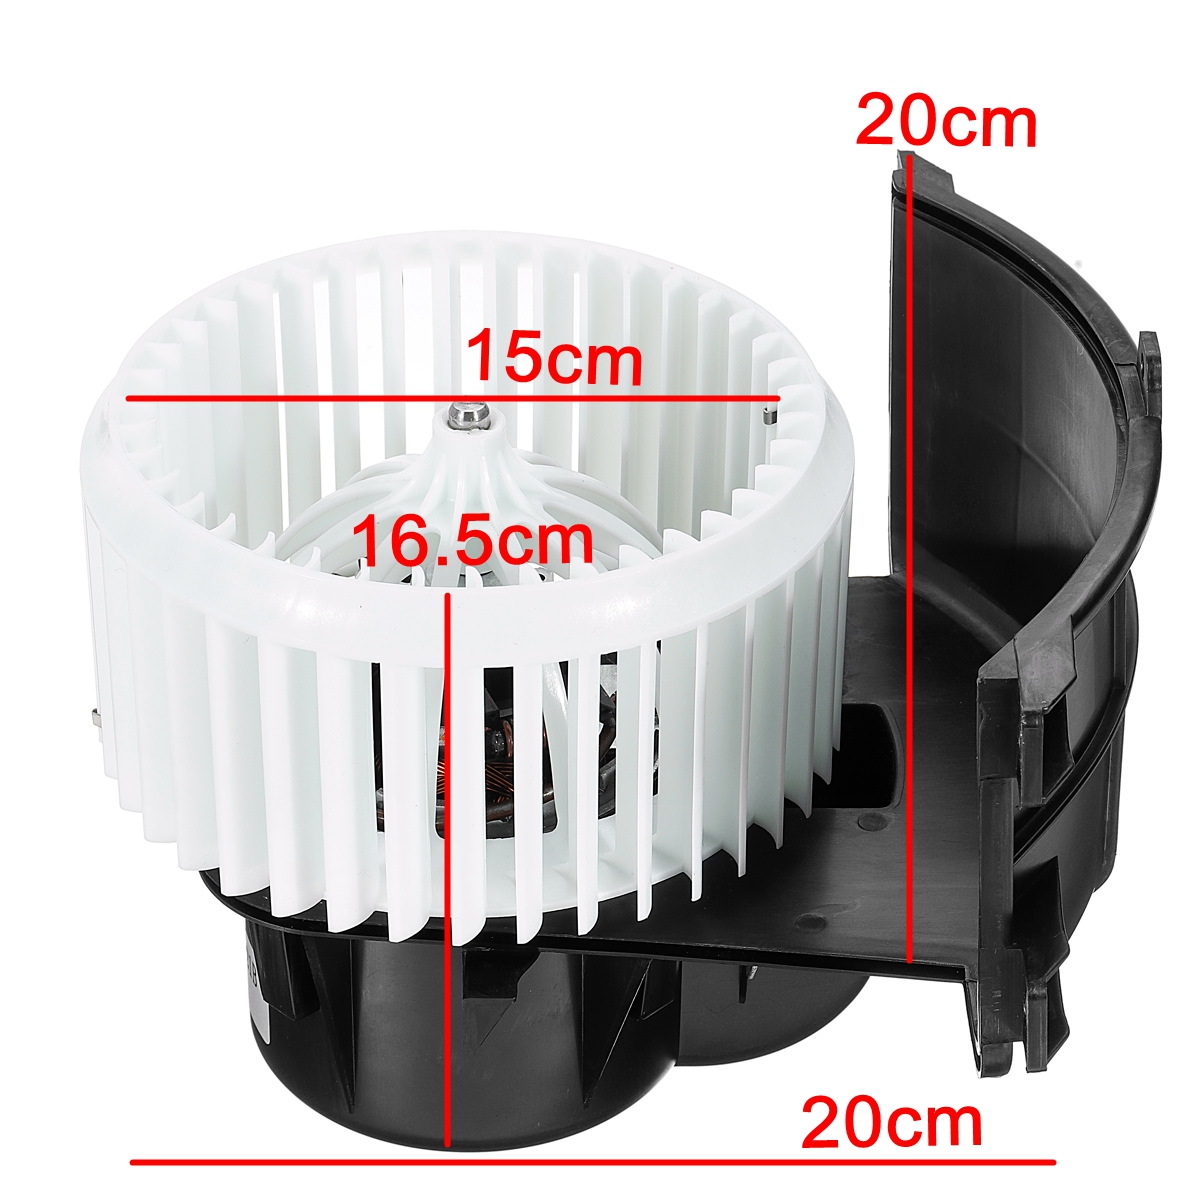 Car Front A/C Heater Blower Fan Motor RHD For VW Transporter T5 2003-2014 Right Hand Driver 7E0819021C 7H2819021A/B 7E2819021C Replacement